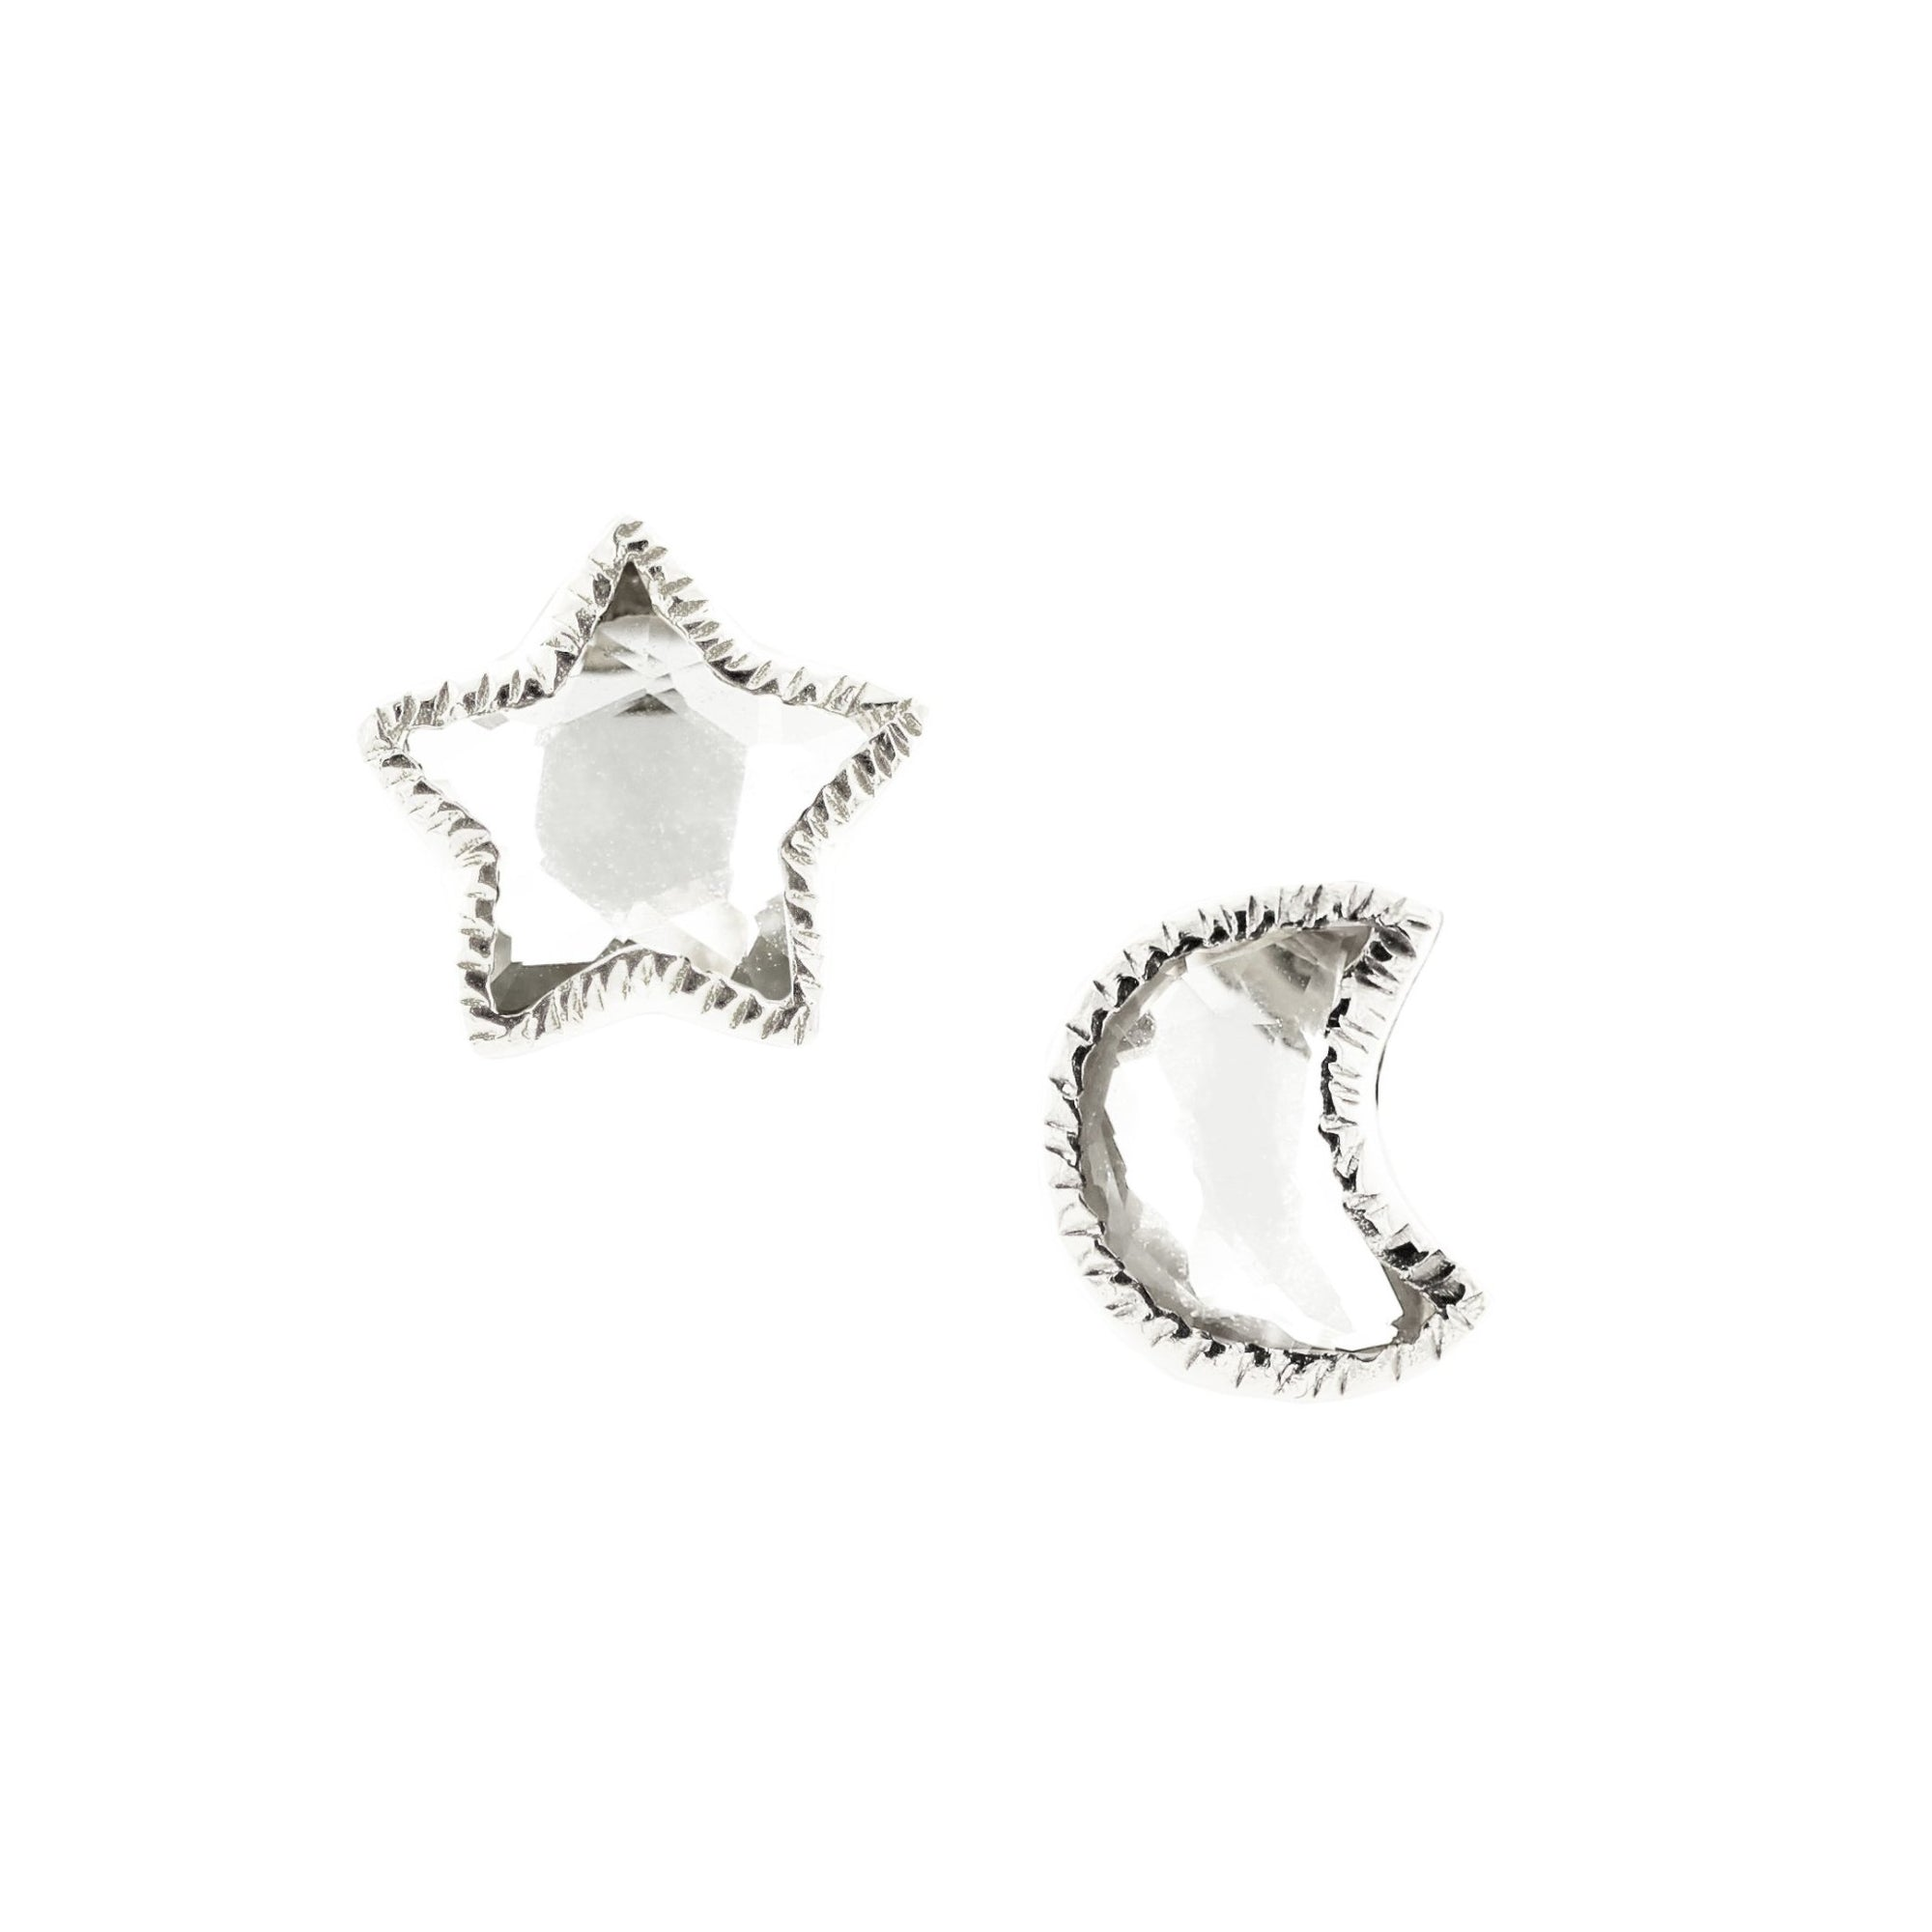 Shoot For The Stars Studs - White Topaz & Silver - SO PRETTY CARA COTTER